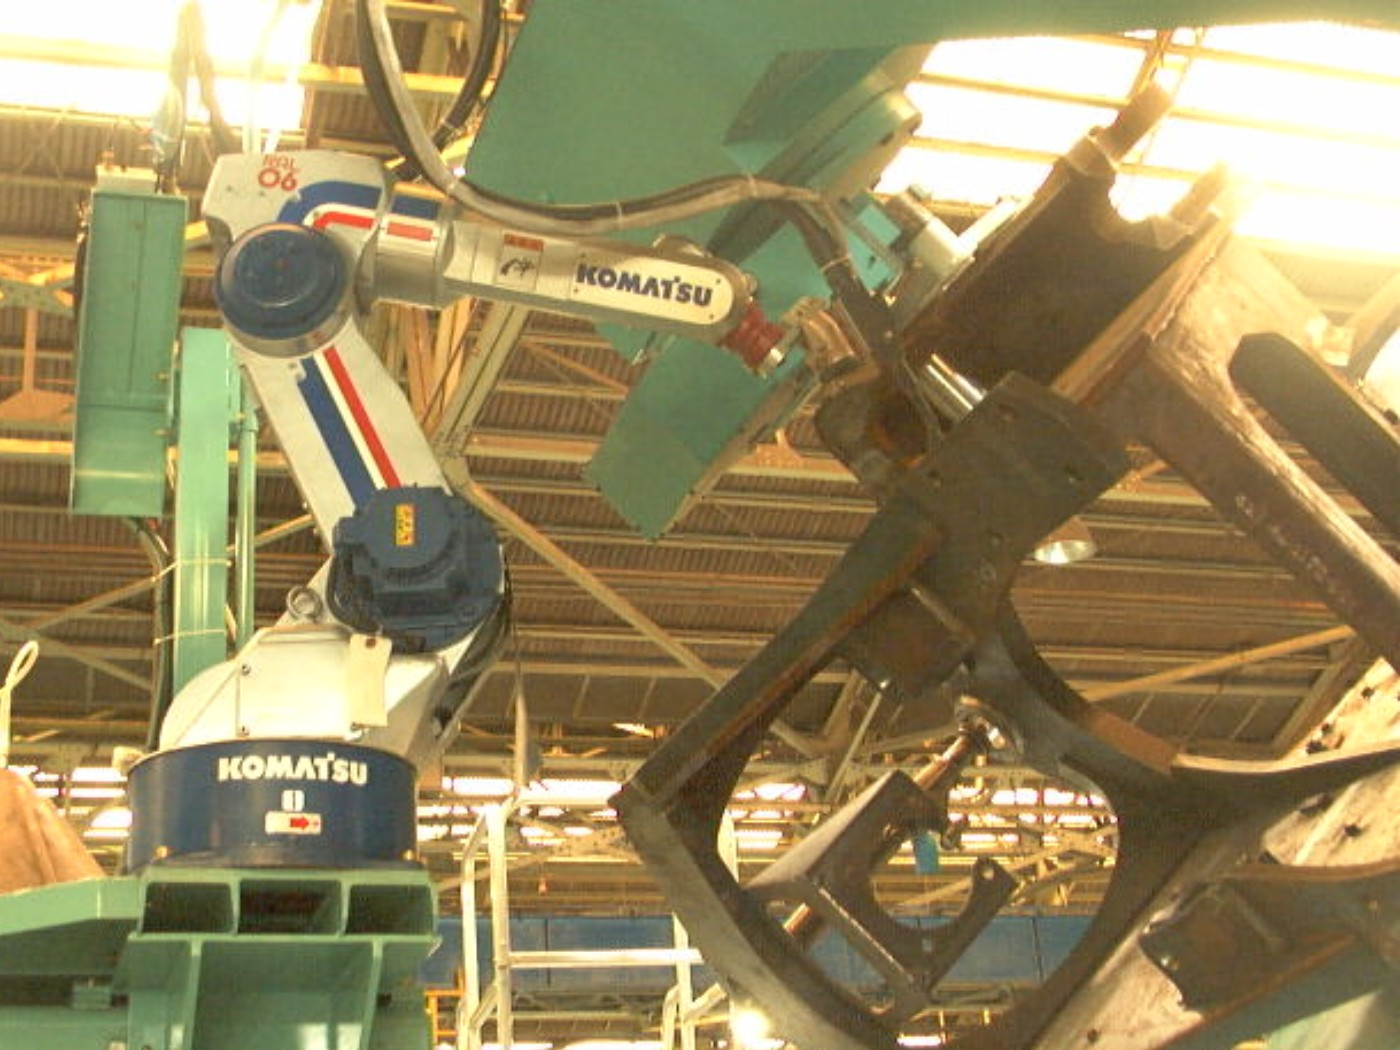 "日本企業がリードする産業用ロボット市場。しかし課題は山積だ。 ""Welding robot system 002"" by KOMATSU Ltd. - KOMATSU Ltd.. Licensed under CC BY-SA 2.1 jp via ウィキメディア・コモンズ - https://commons.wikimedia.org/wiki/File:Welding_robot_system_002.jpg#/media/File:Welding_robot_system_002.jpg"